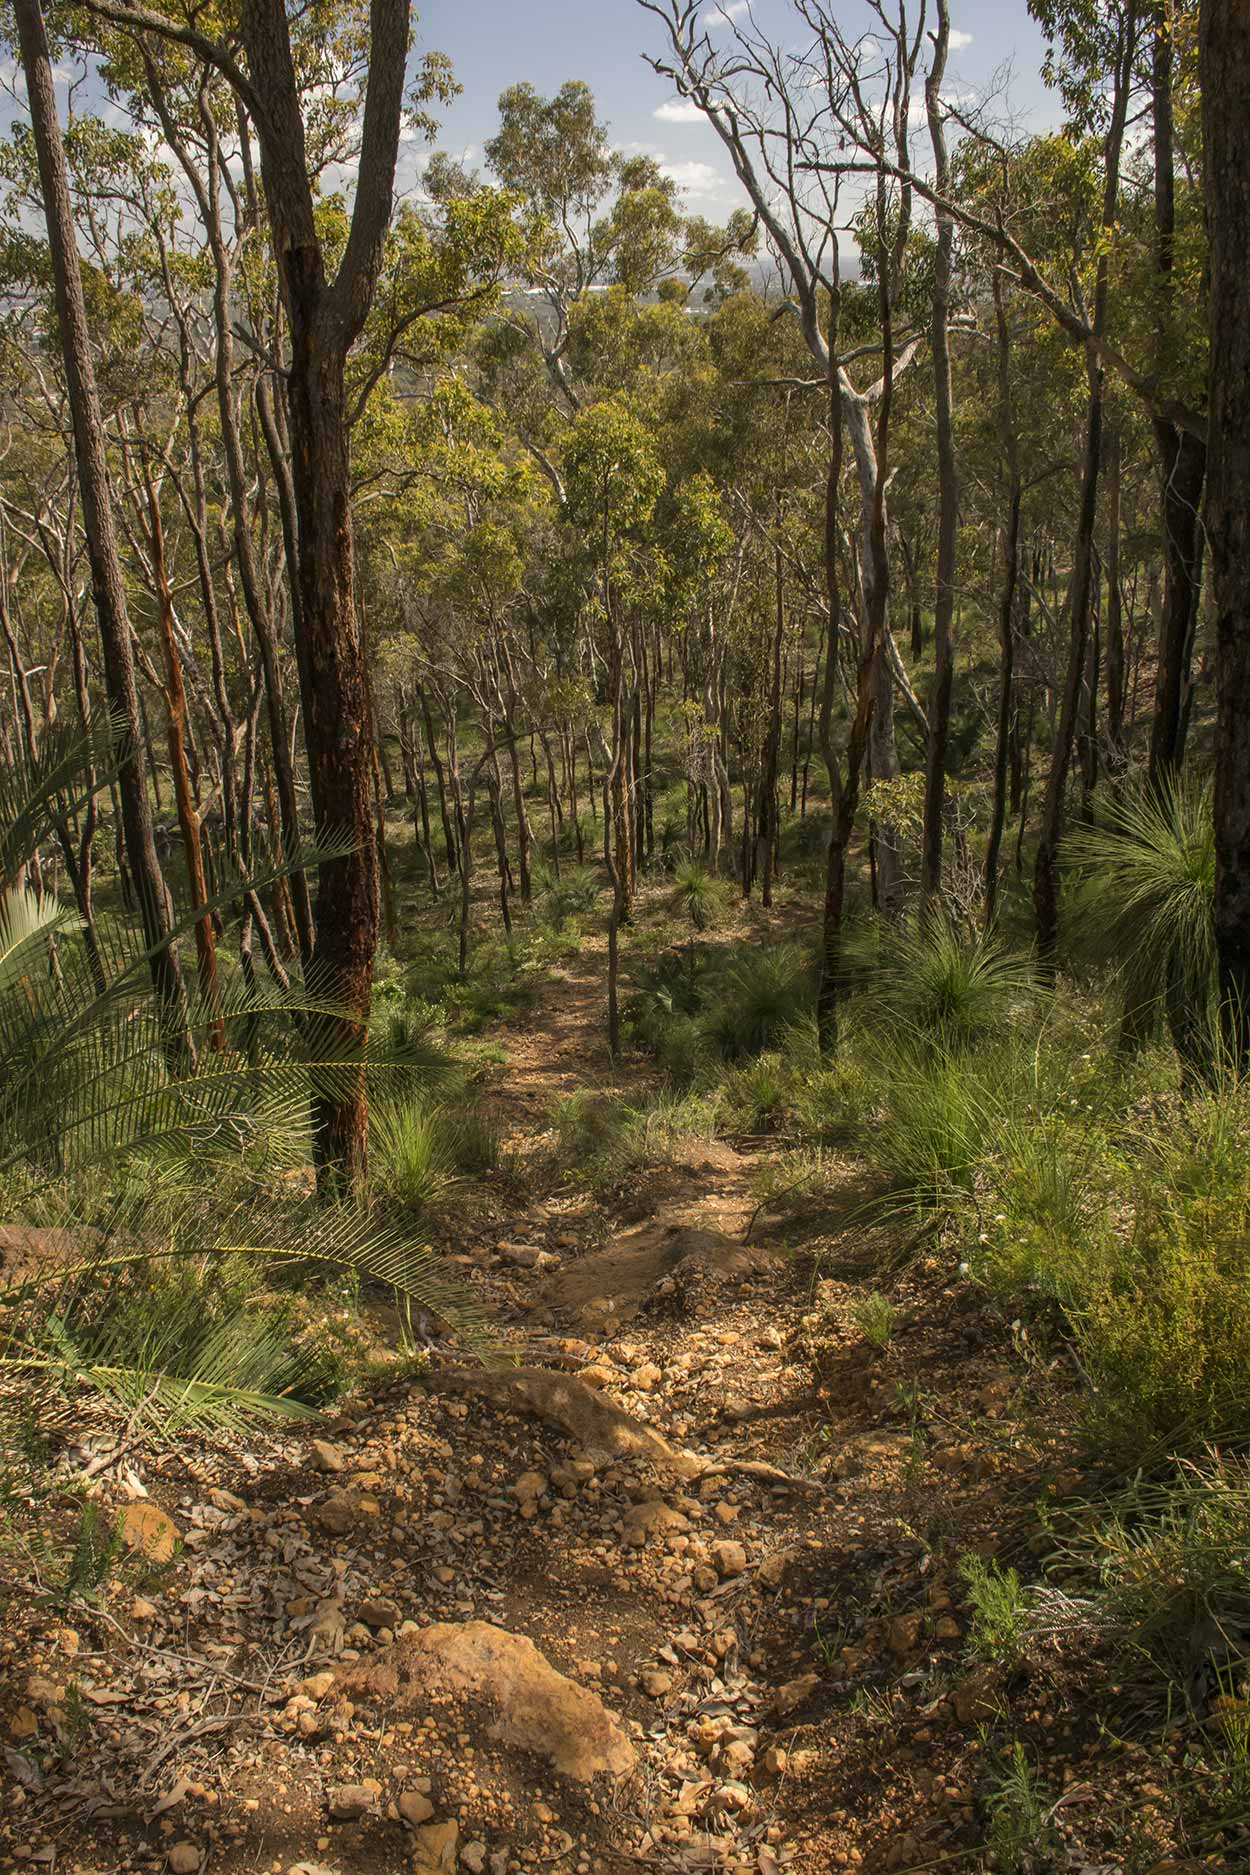 A rocky track descends into the bushland of the Palm Terrace Walk, Mundy Regional Park, Perth, Western Australia